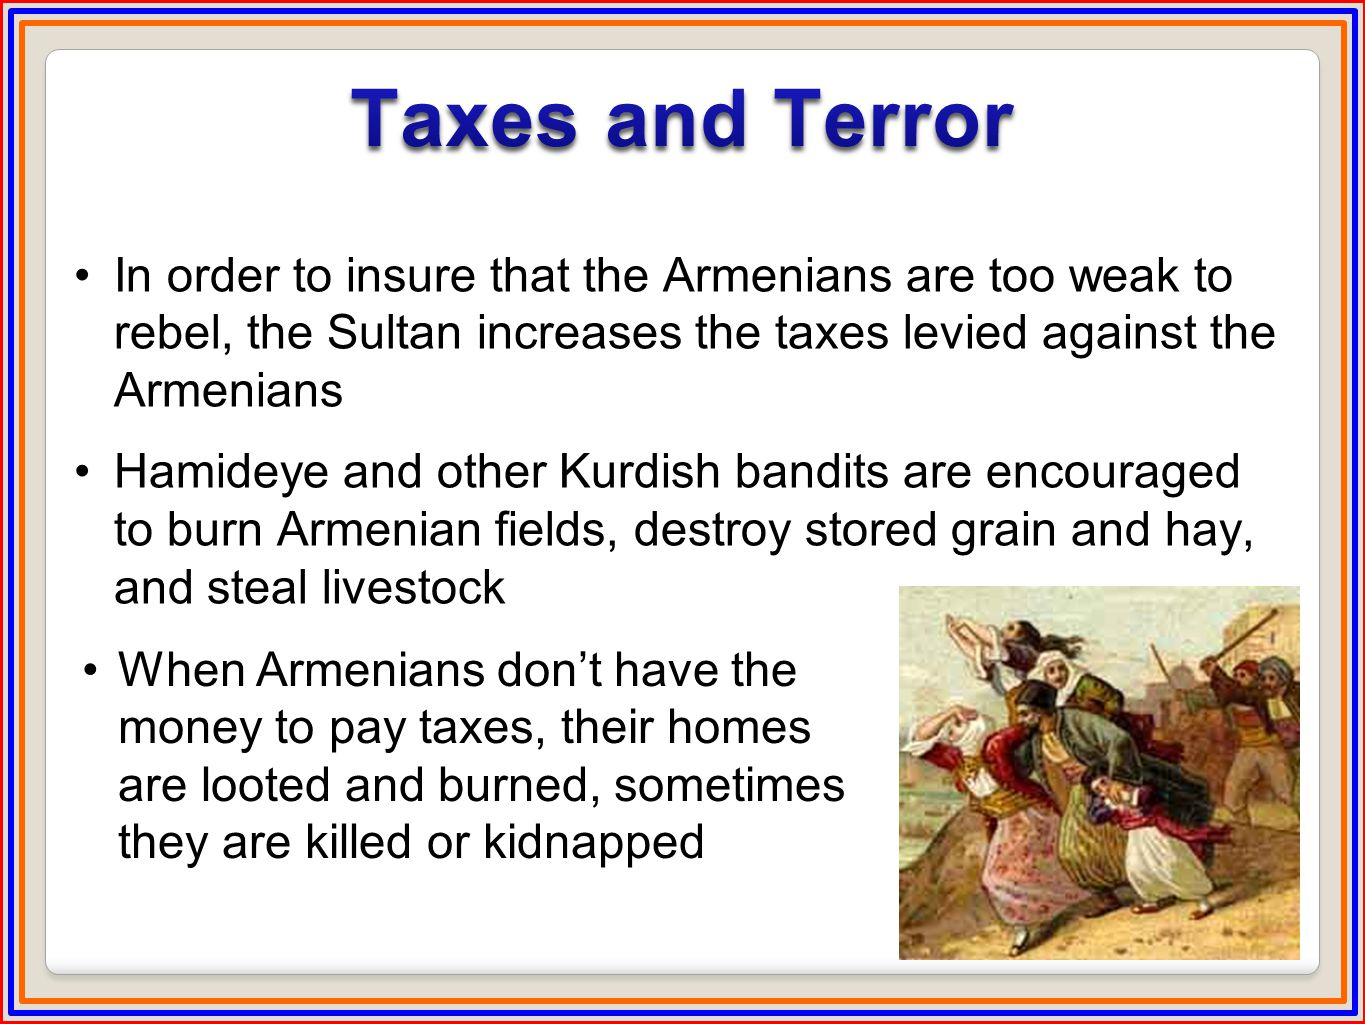 In order to insure that the Armenians are too weak to rebel, the Sultan increases the taxes levied against the Armenians Hamideye and other Kurdish bandits are encouraged to burn Armenian fields, destroy stored grain and hay, and steal livestock When Armenians don't have the money to pay taxes, their homes are looted and burned, sometimes they are killed or kidnapped